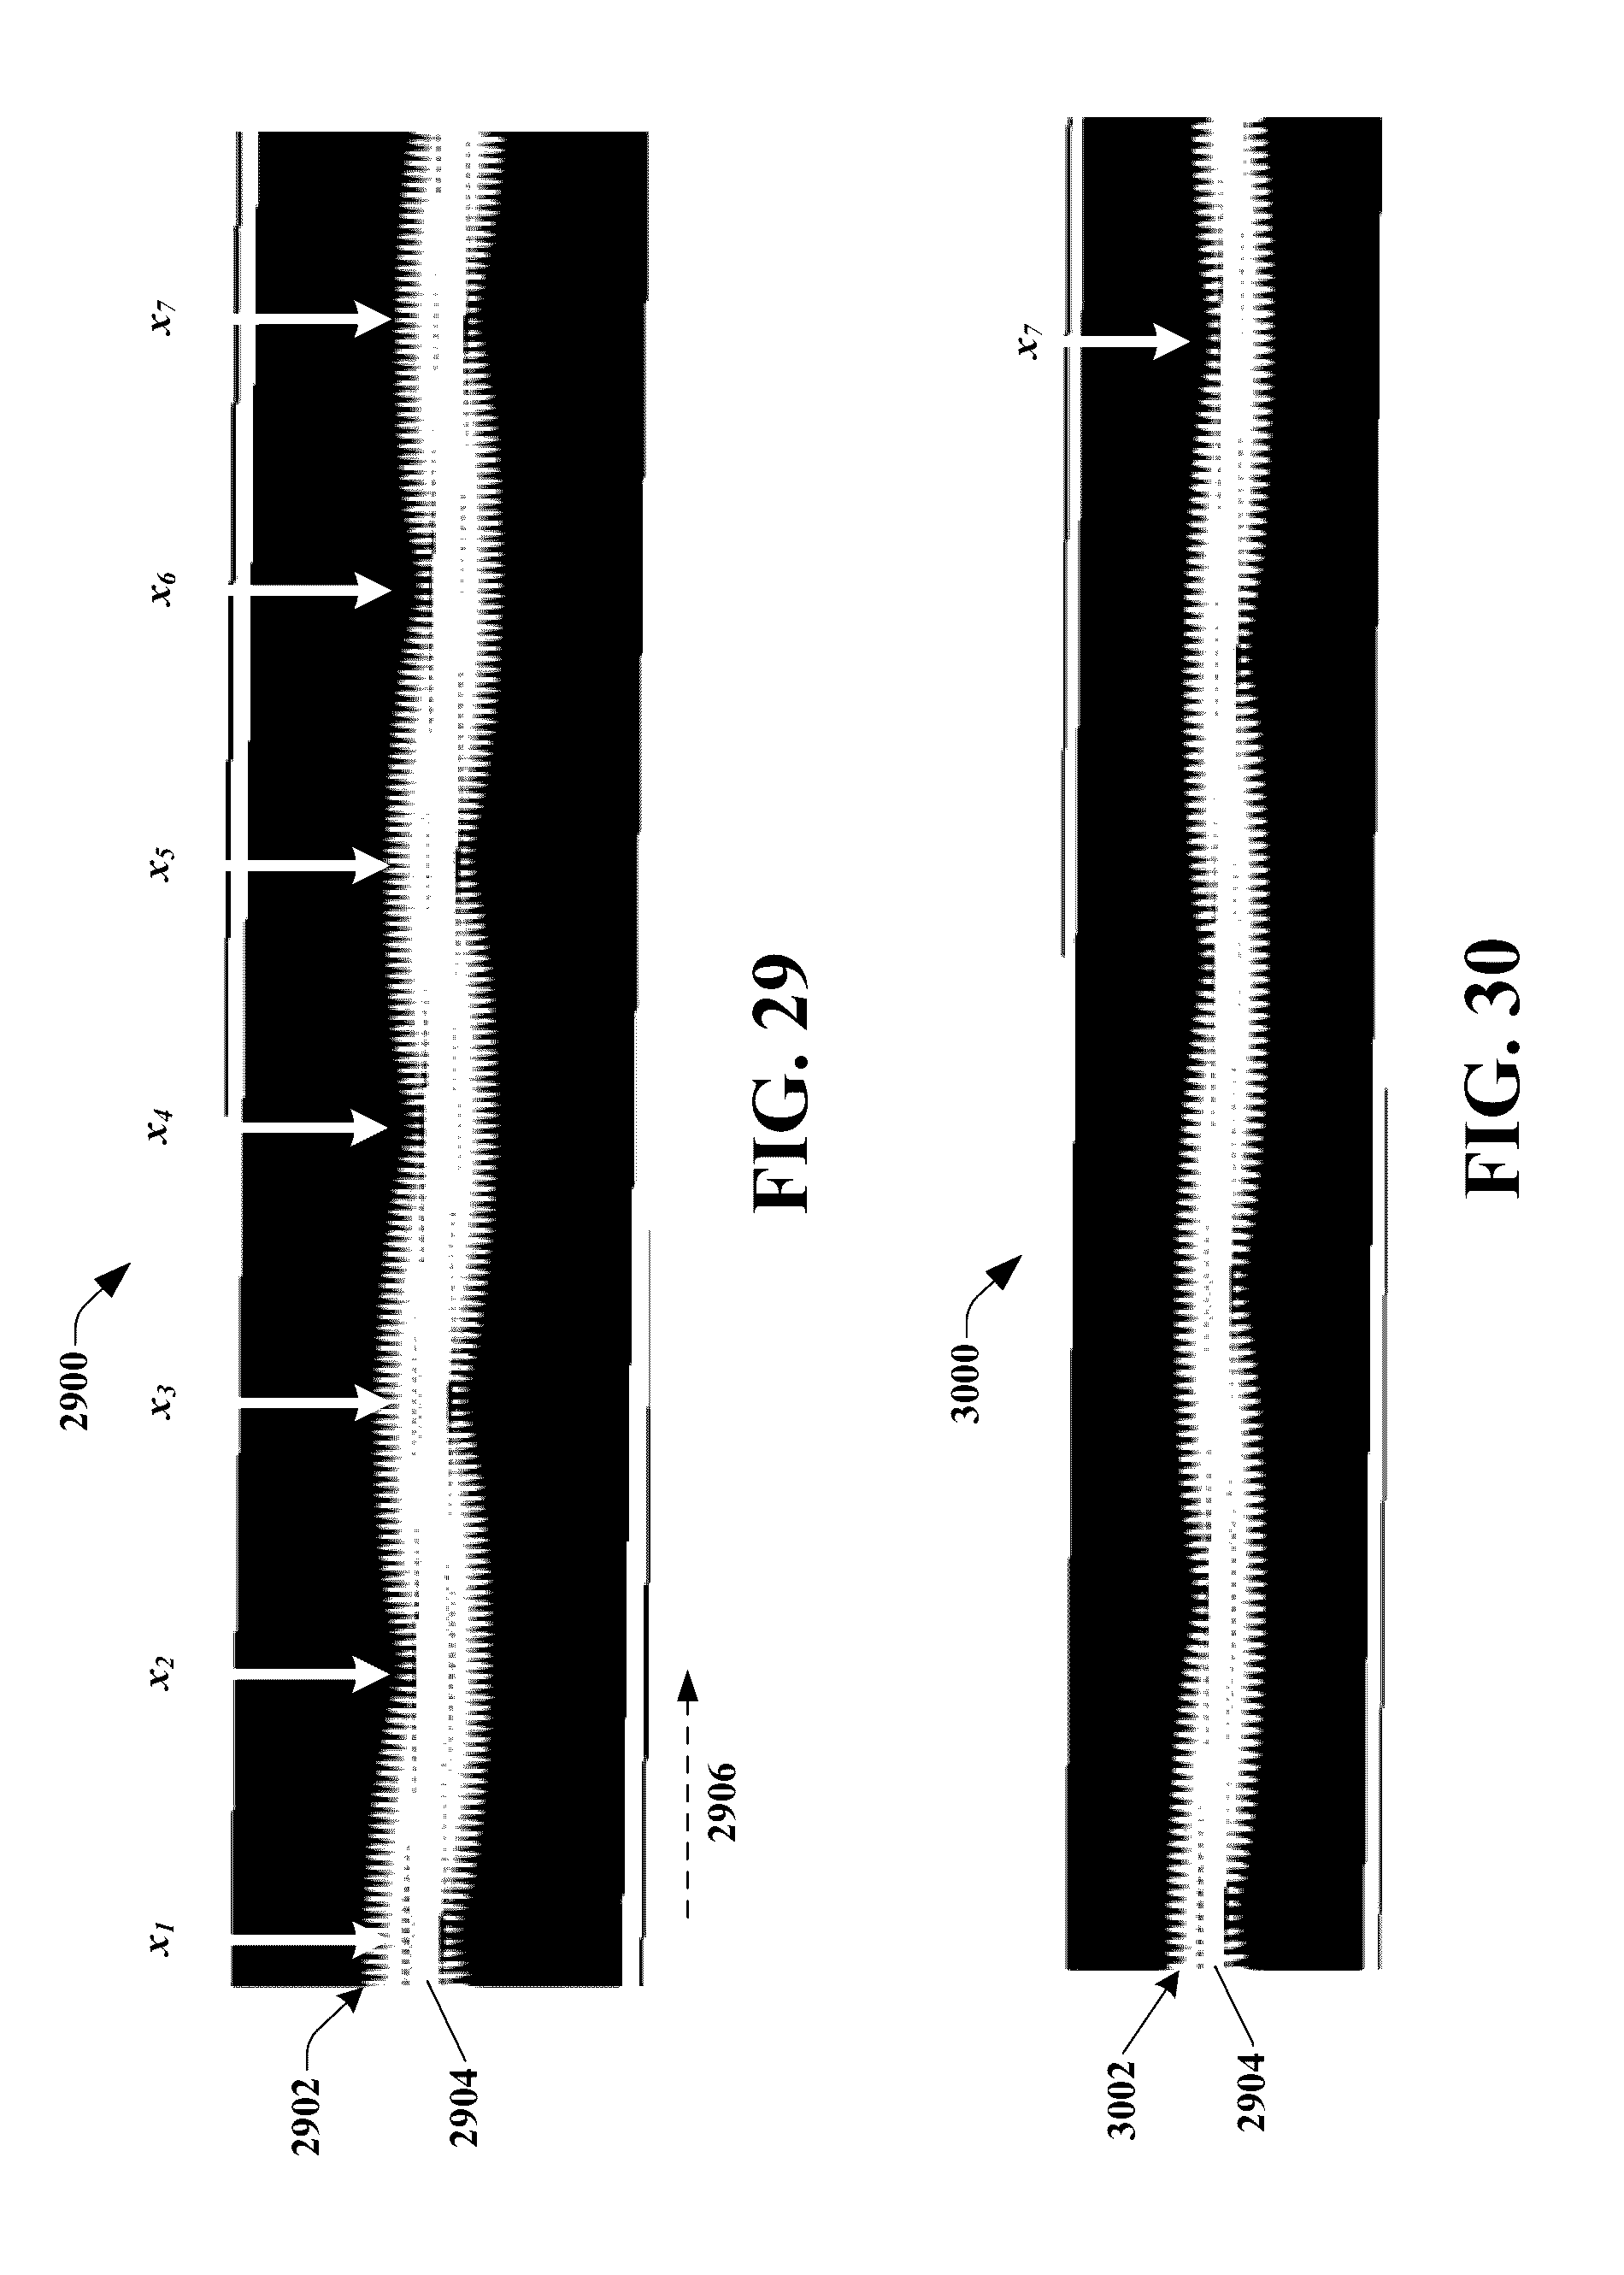 US9571209B2 Transmission device with impairment compensation